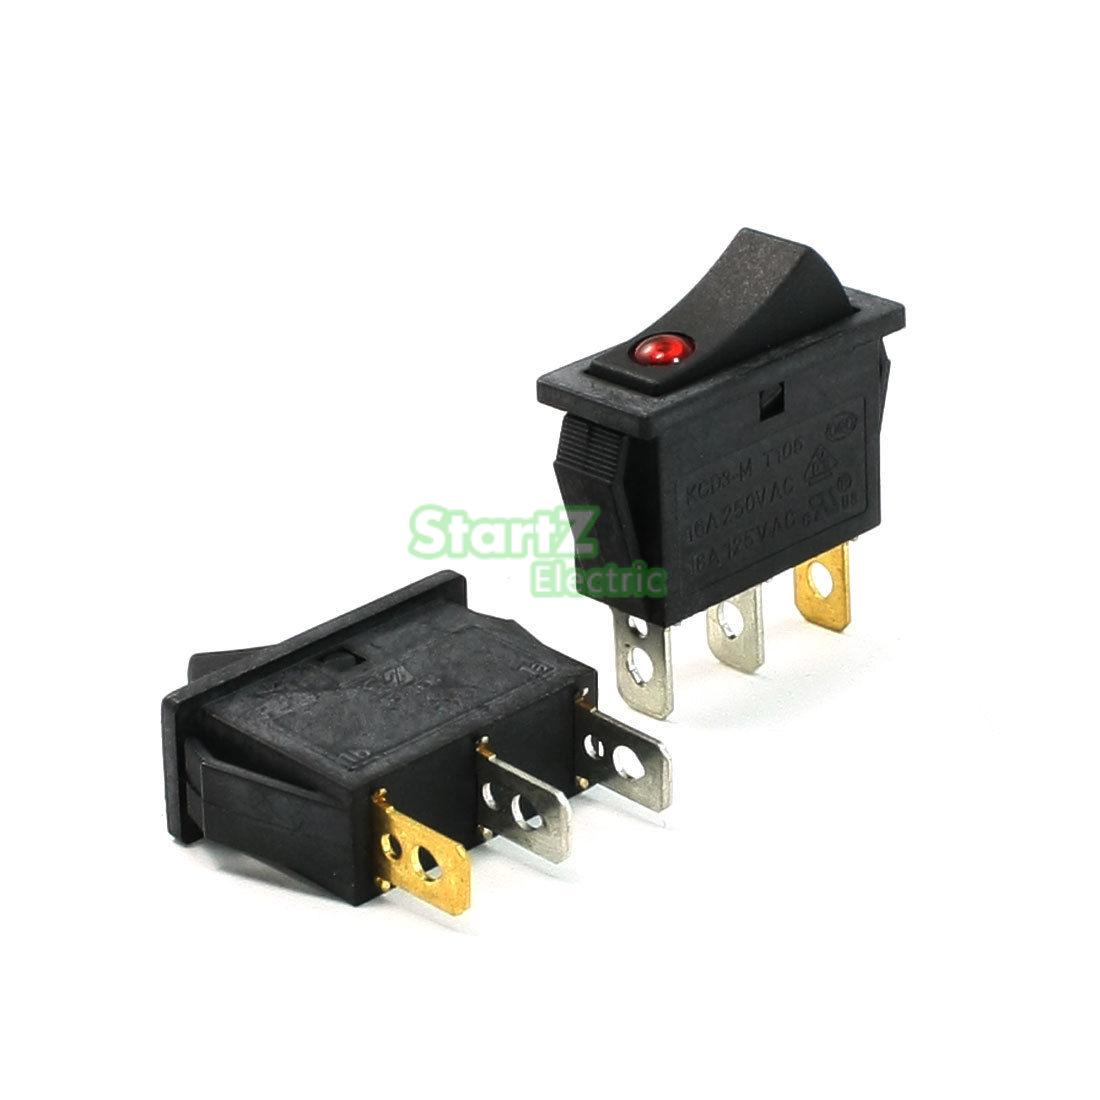 5pcs 3 Pin Red Led Light Spst 2 Position On Off Rocker Switch 15a With Wire Leads Details About Toggle 250v 125vac In Switches From Lights Lighting Alibaba Group